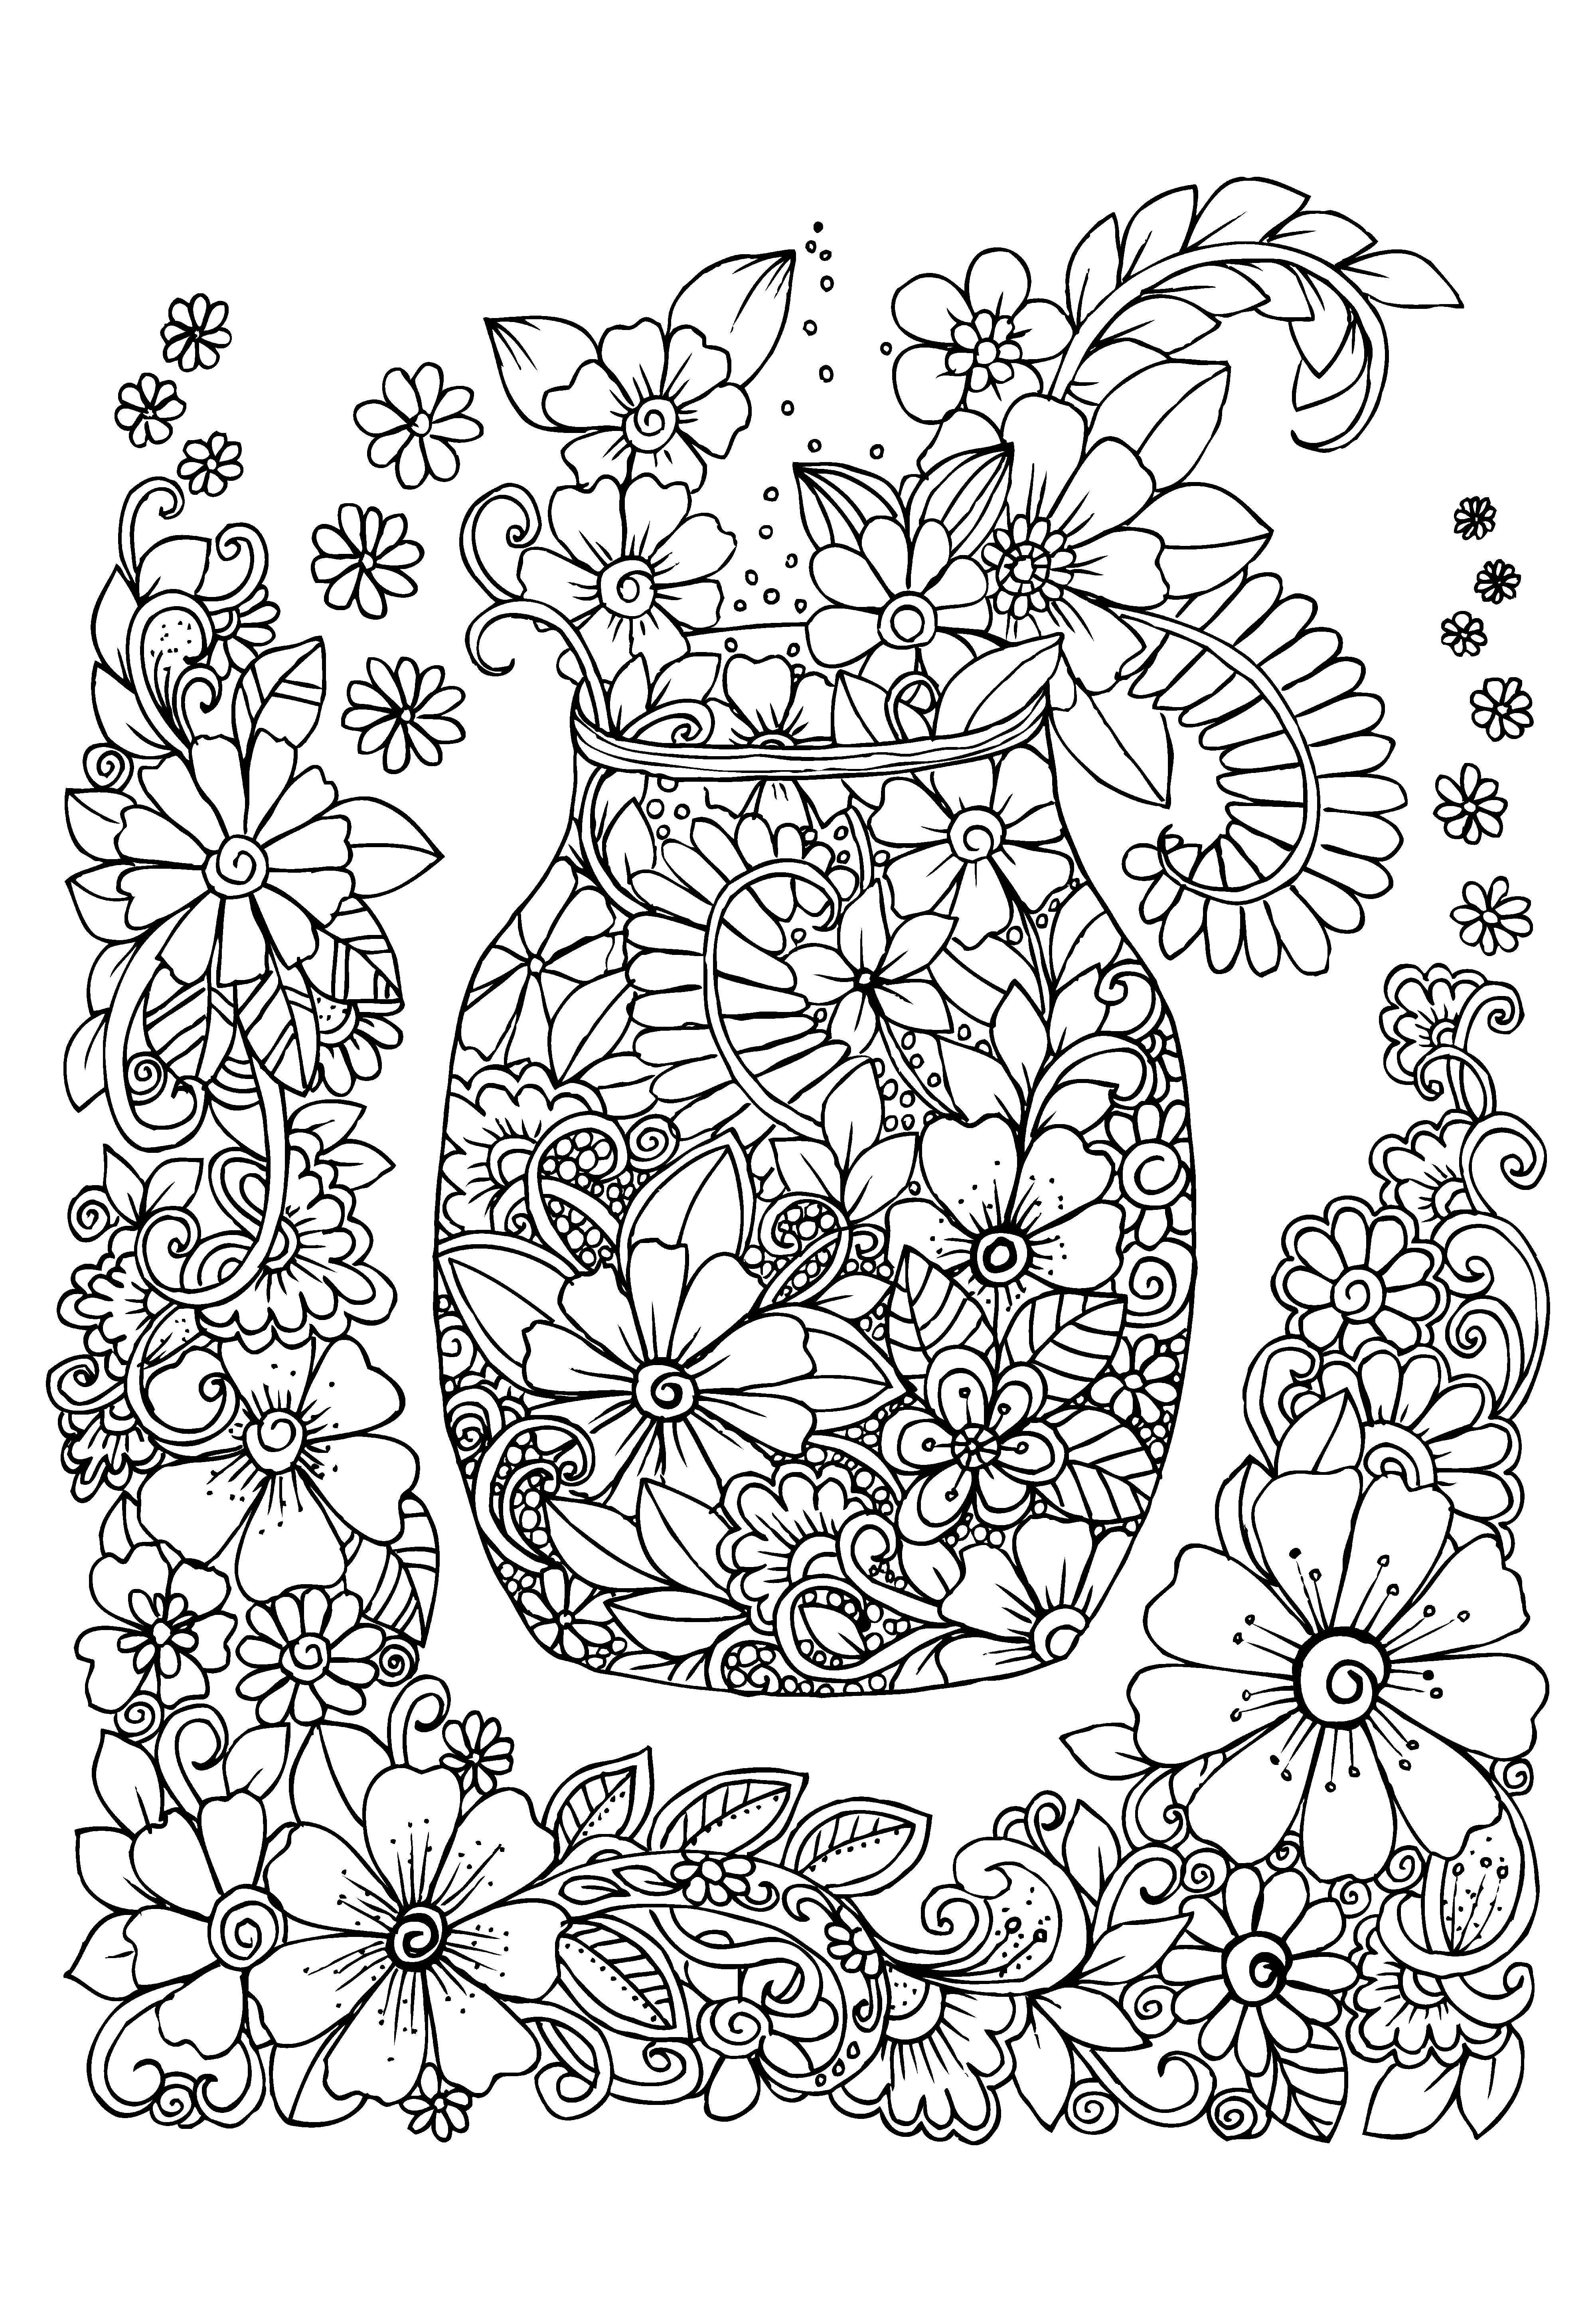 How Adult Colouring Therapy Could Improve Your Mental